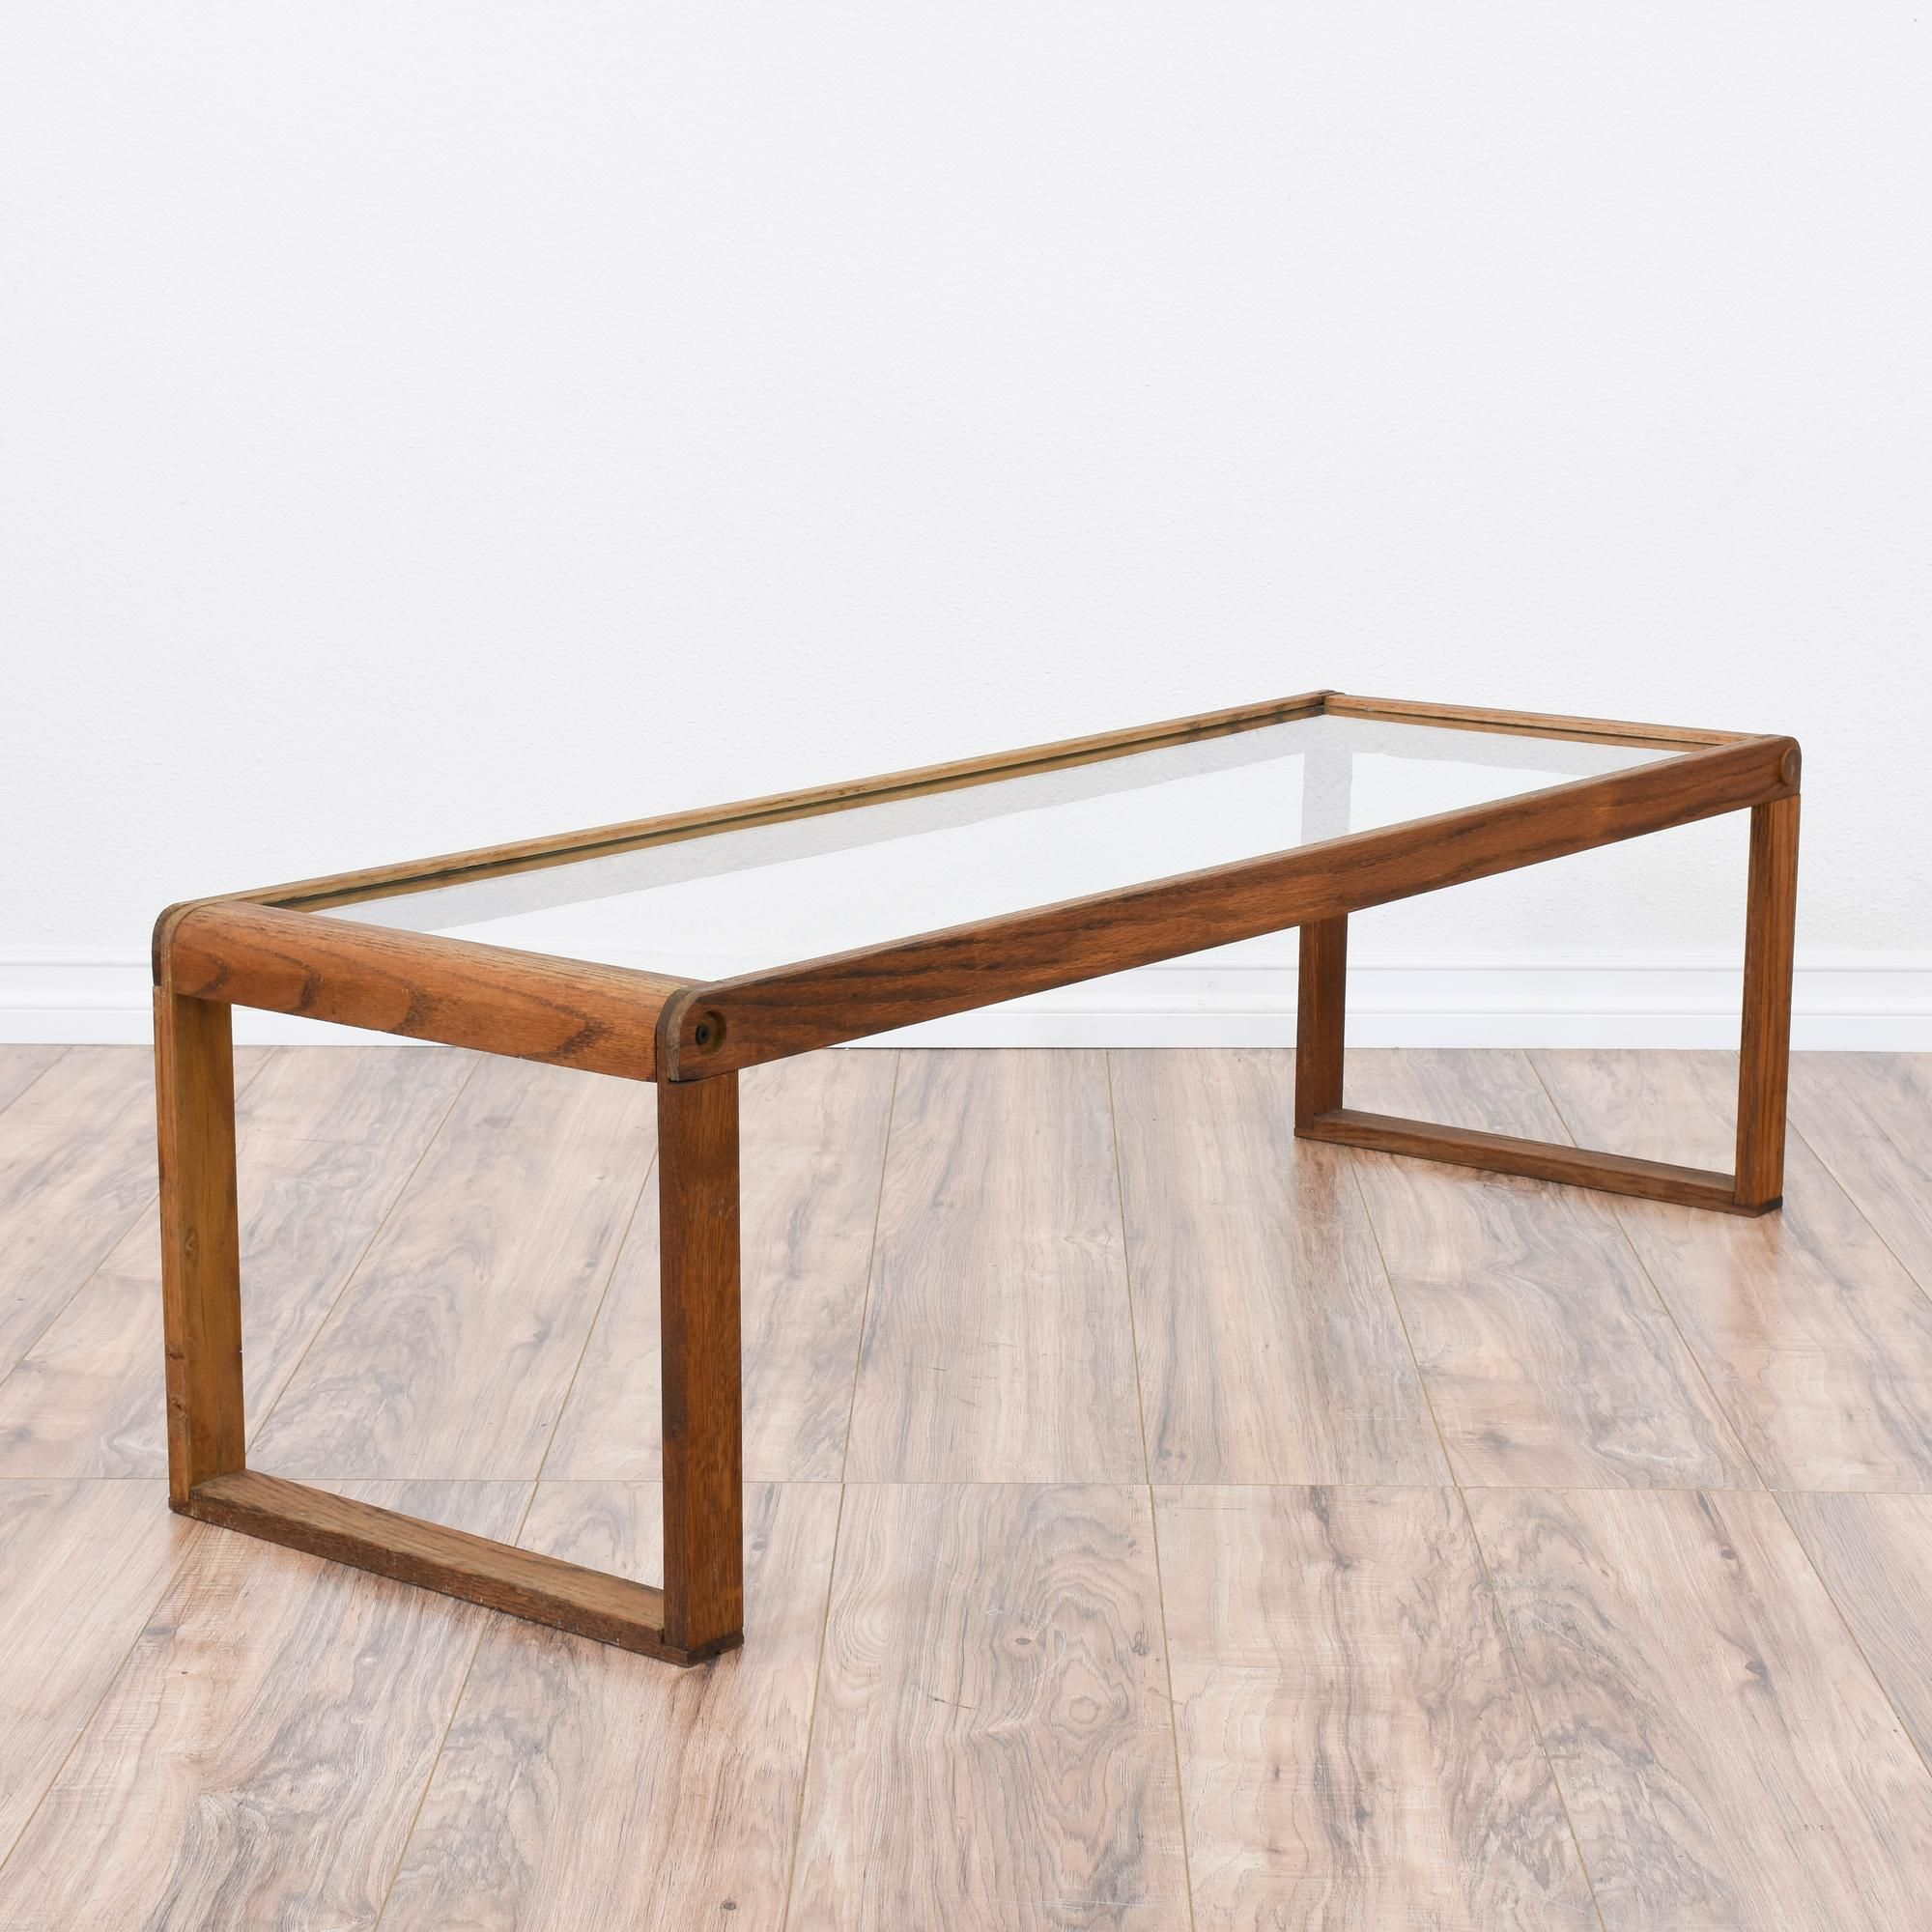 This Mid Century Modern Coffee Table Is Featured In A Solid Wood With A Gorgeous Walnut Finis Mid Century Modern Coffee Table Modern Coffee Tables Coffee Table [ 2000 x 2000 Pixel ]